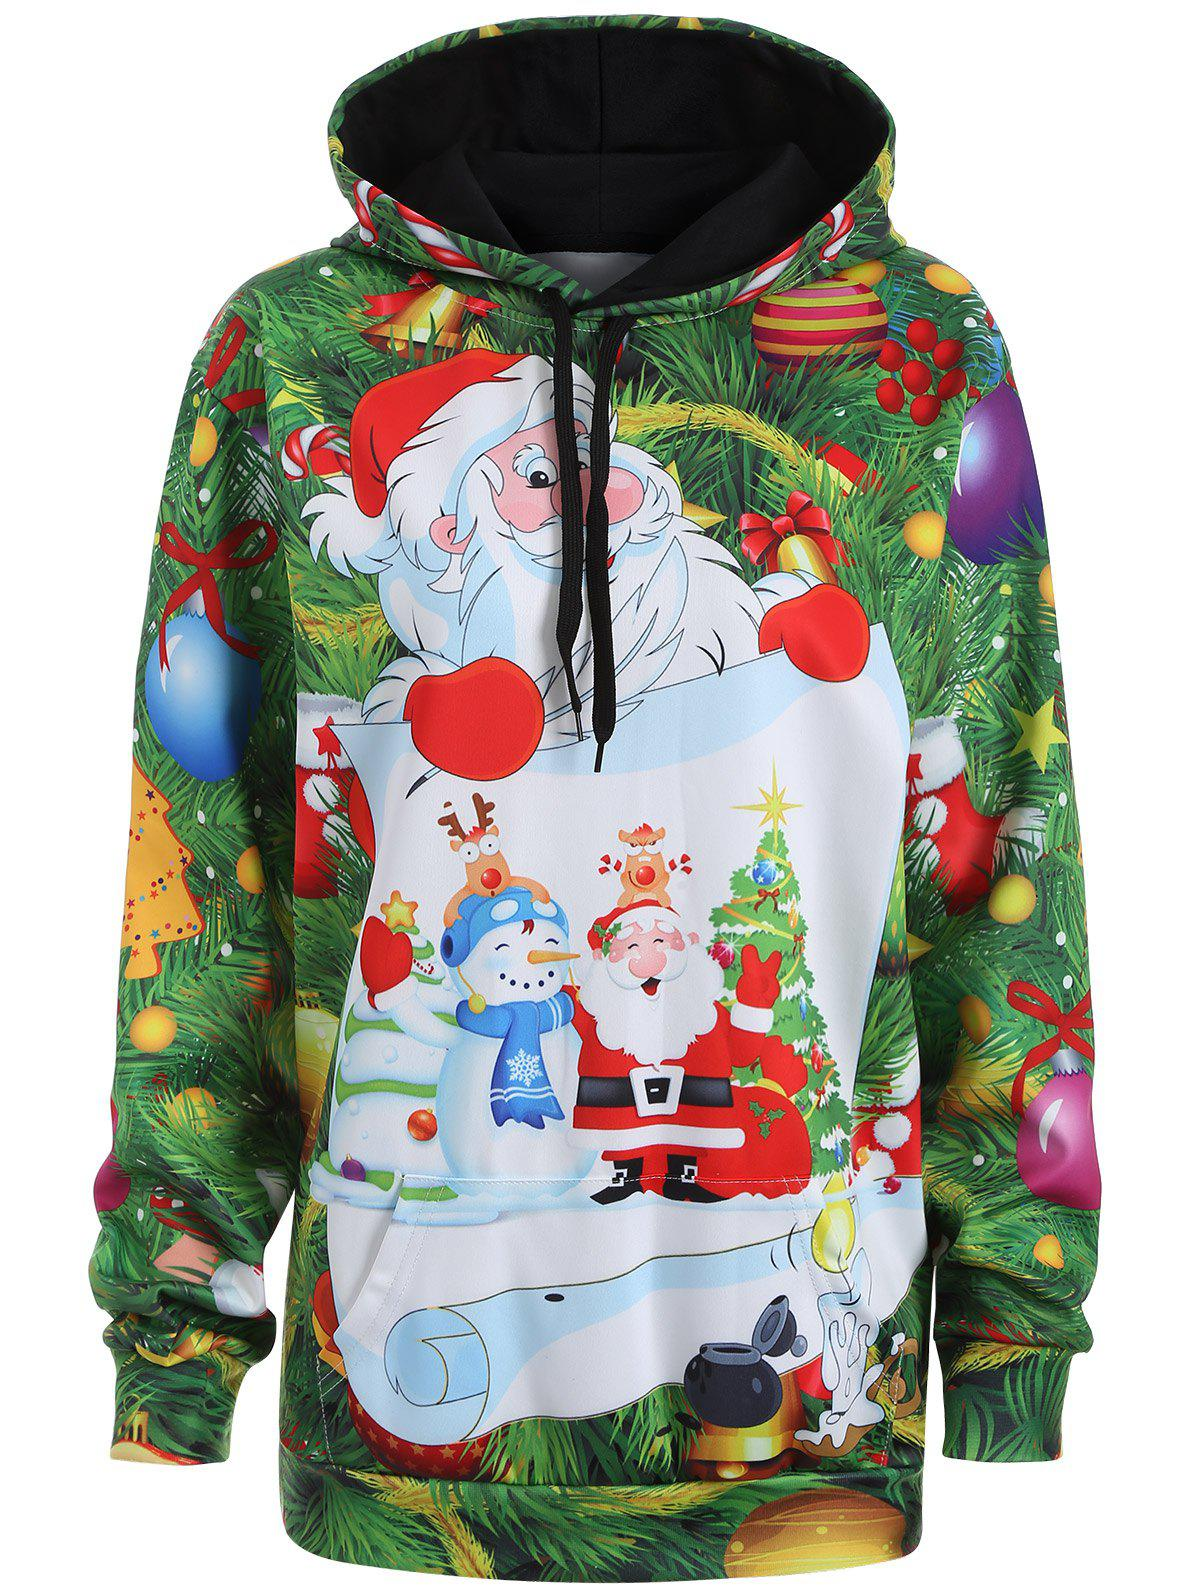 Plus Size Christmas Santa Claus Drawstring Tunic Hoodie plus size drawstring hoodie with christmas decoration print